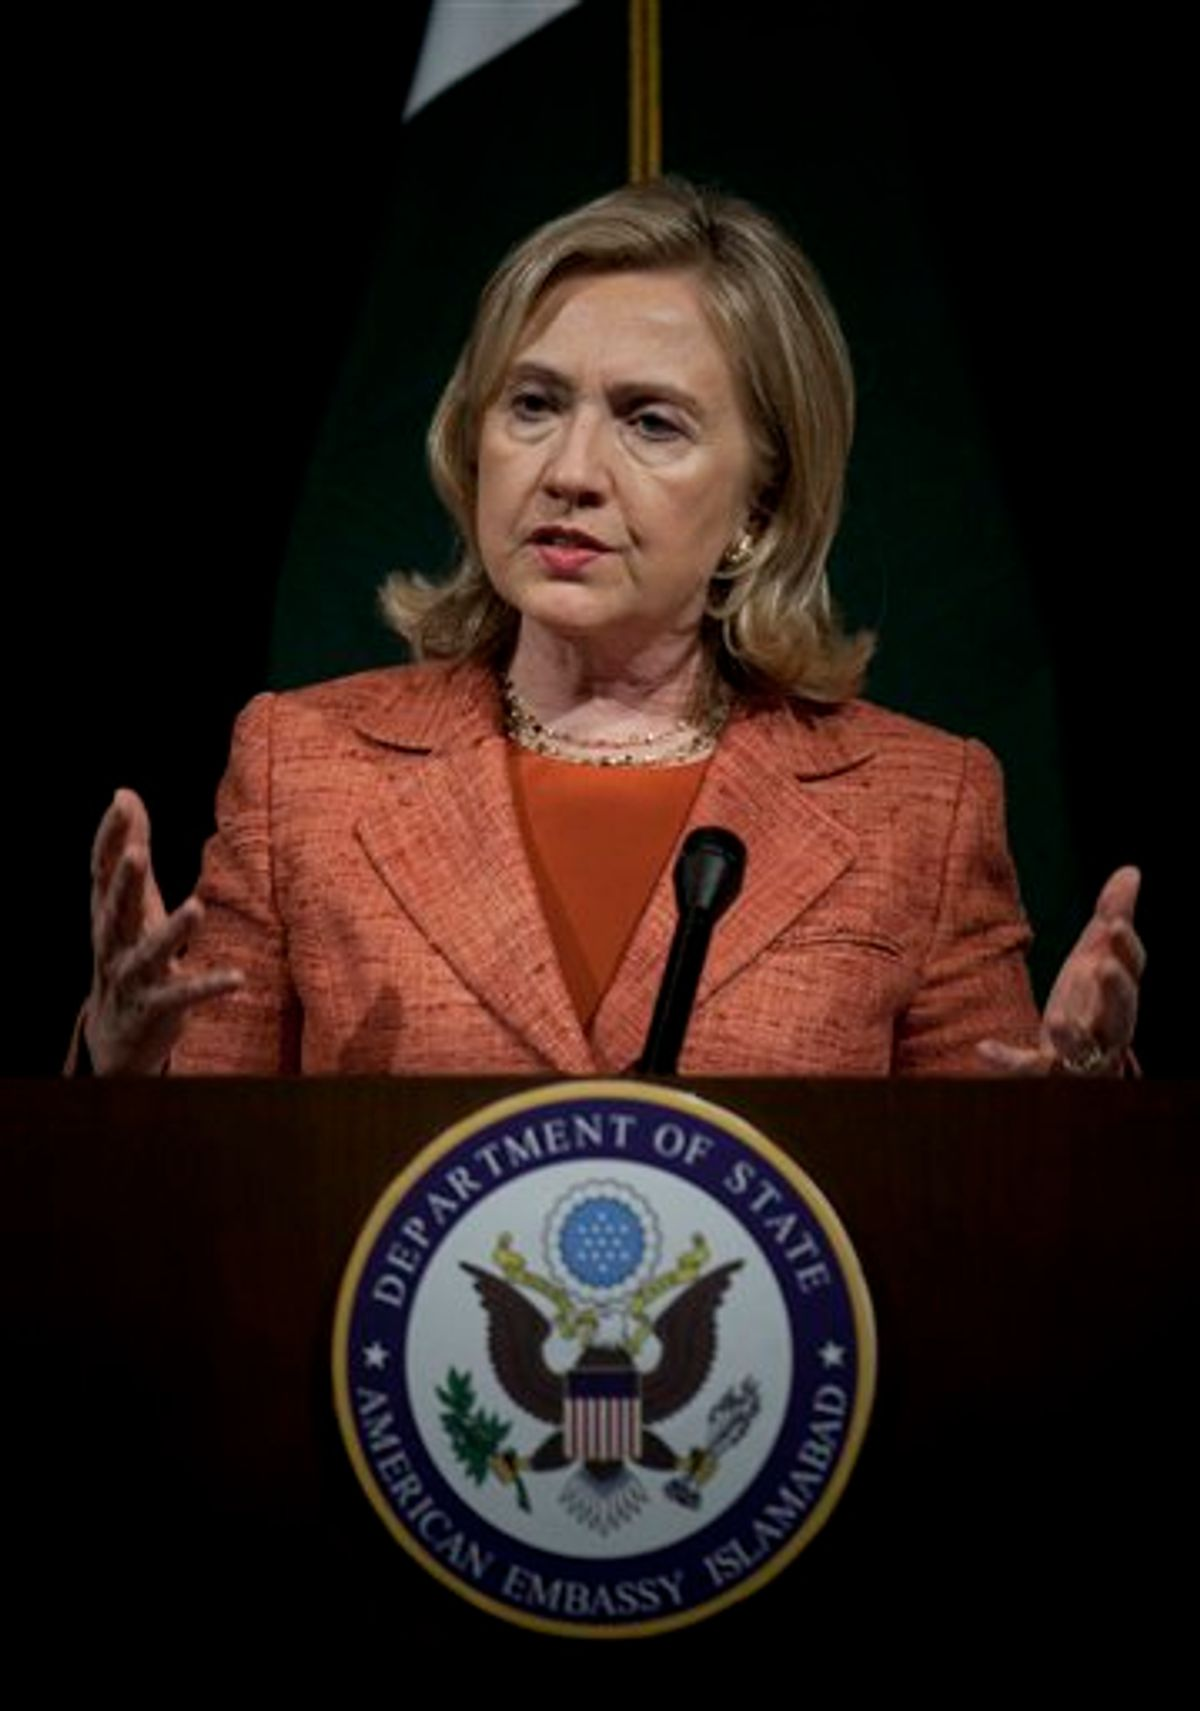 """U.S. Secretary of State Hillary Rodham Clinton addresses a news conference at U. S. embassy in Islamabad, Pakistan Friday, May 27, 2011. Clinton said that relations between the United States and Pakistan had reached a turning point after the killing of Osama bin Laden and Islamabad must make """"decisive steps"""" in the days ahead to fight terrorism. (AP Photo/B.K.Bangash) (AP)"""